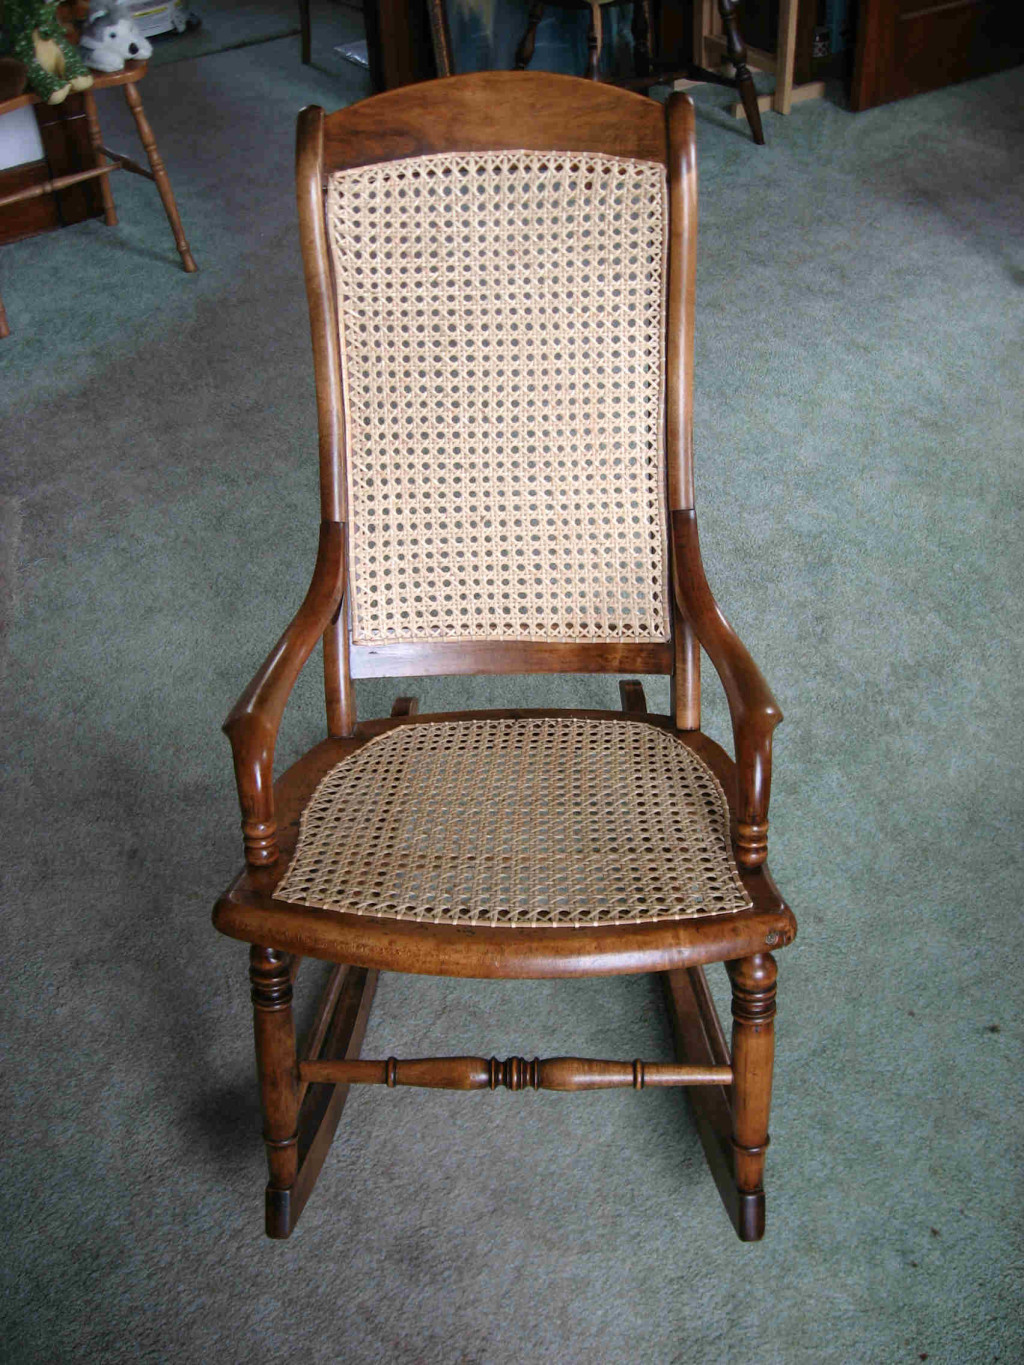 Wicker Chair Repair Fresh Images Of Wicker Furniture